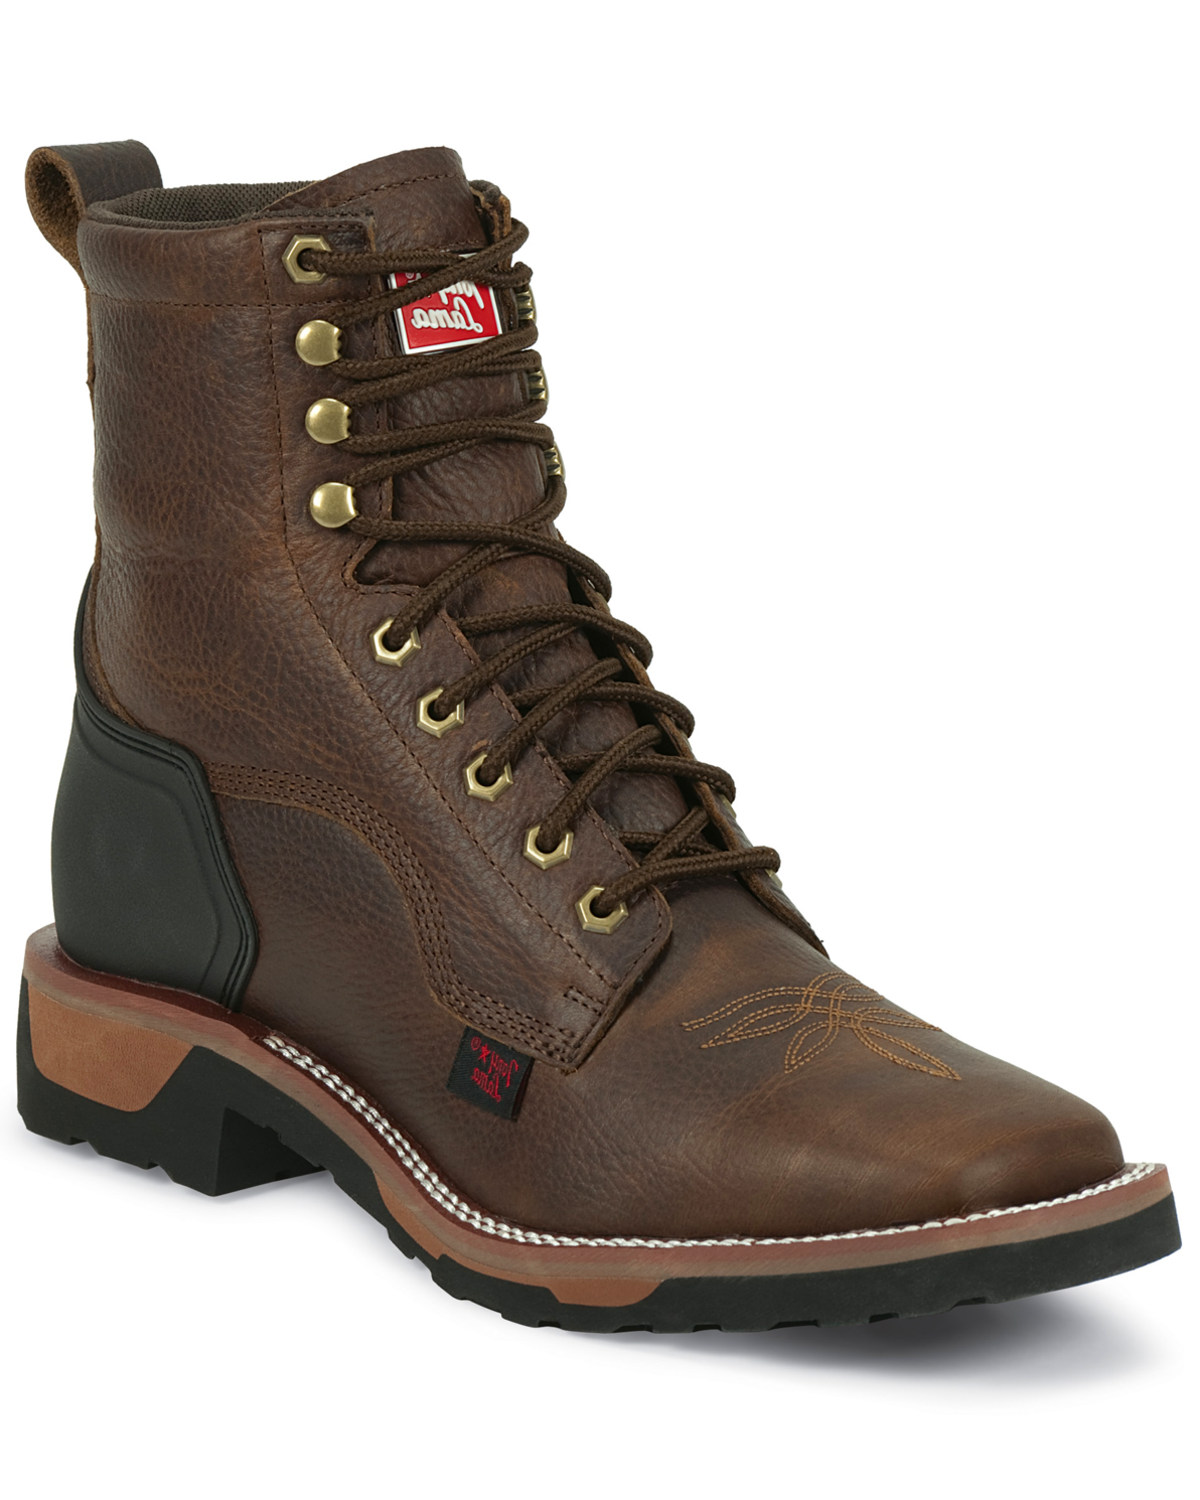 Western TLX Lace Up Work Boots | Boot Barn